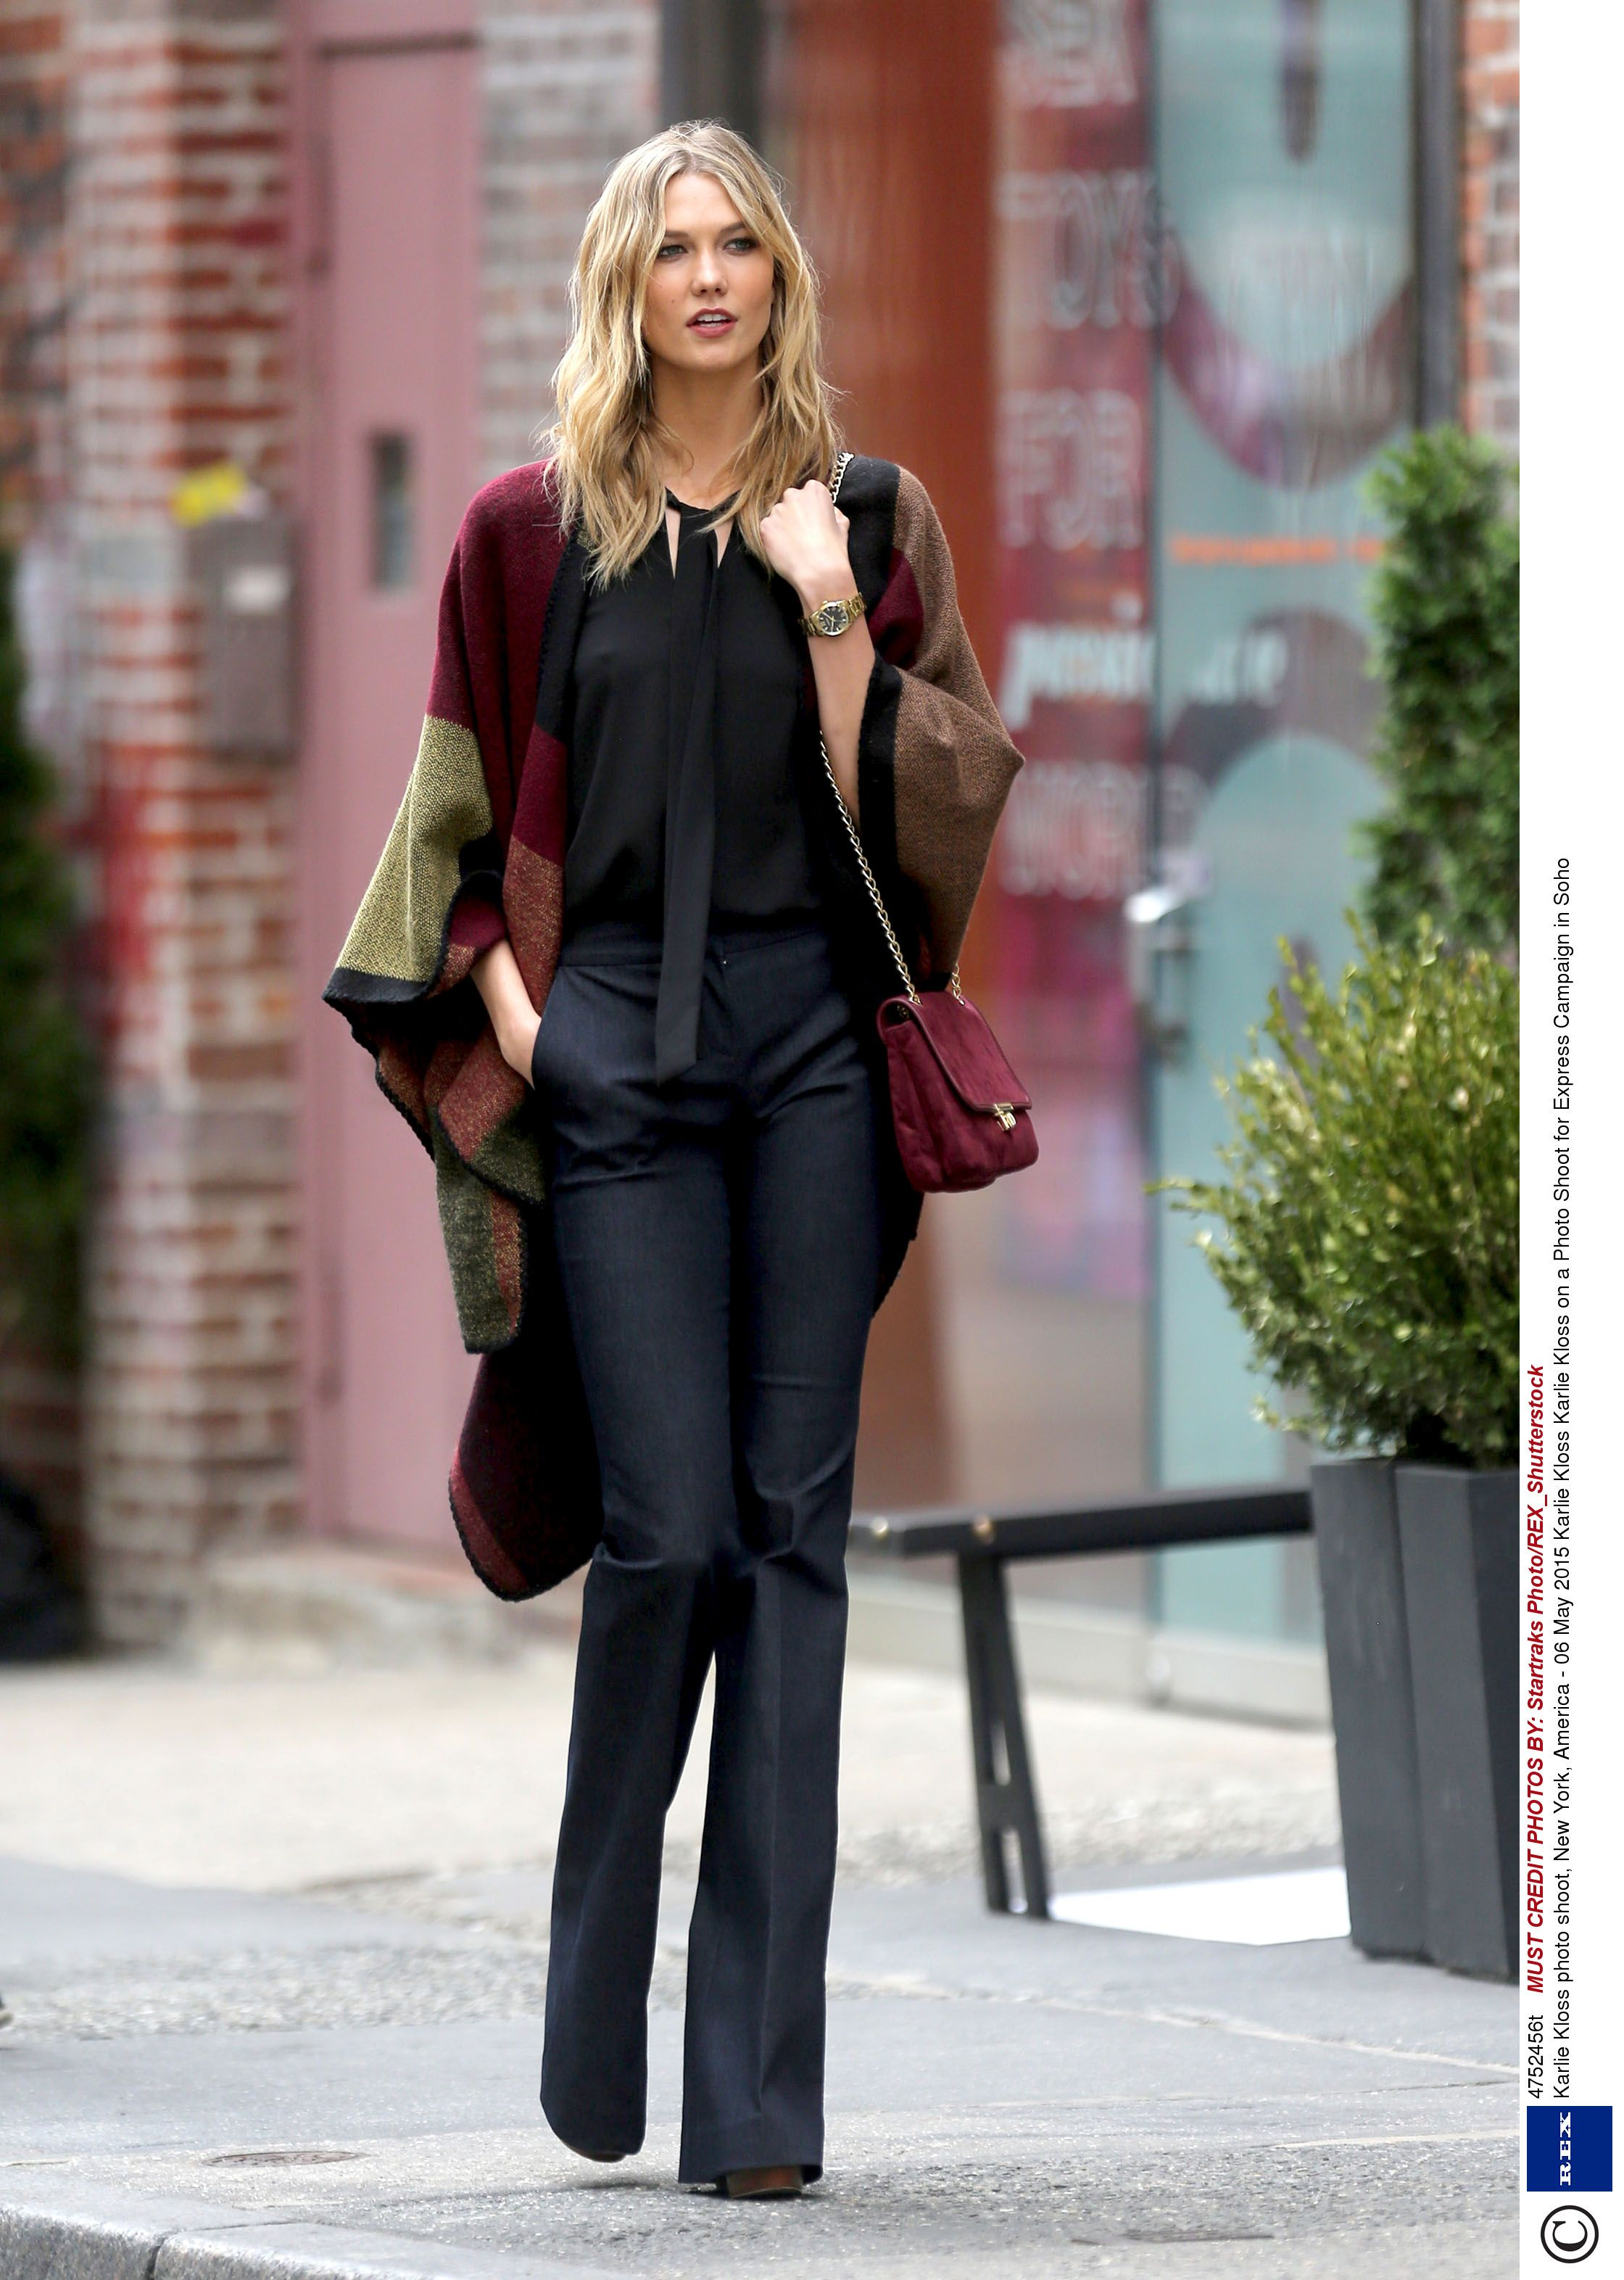 Karlie kloss casual style steps out in a chilly nyc - 2019 year